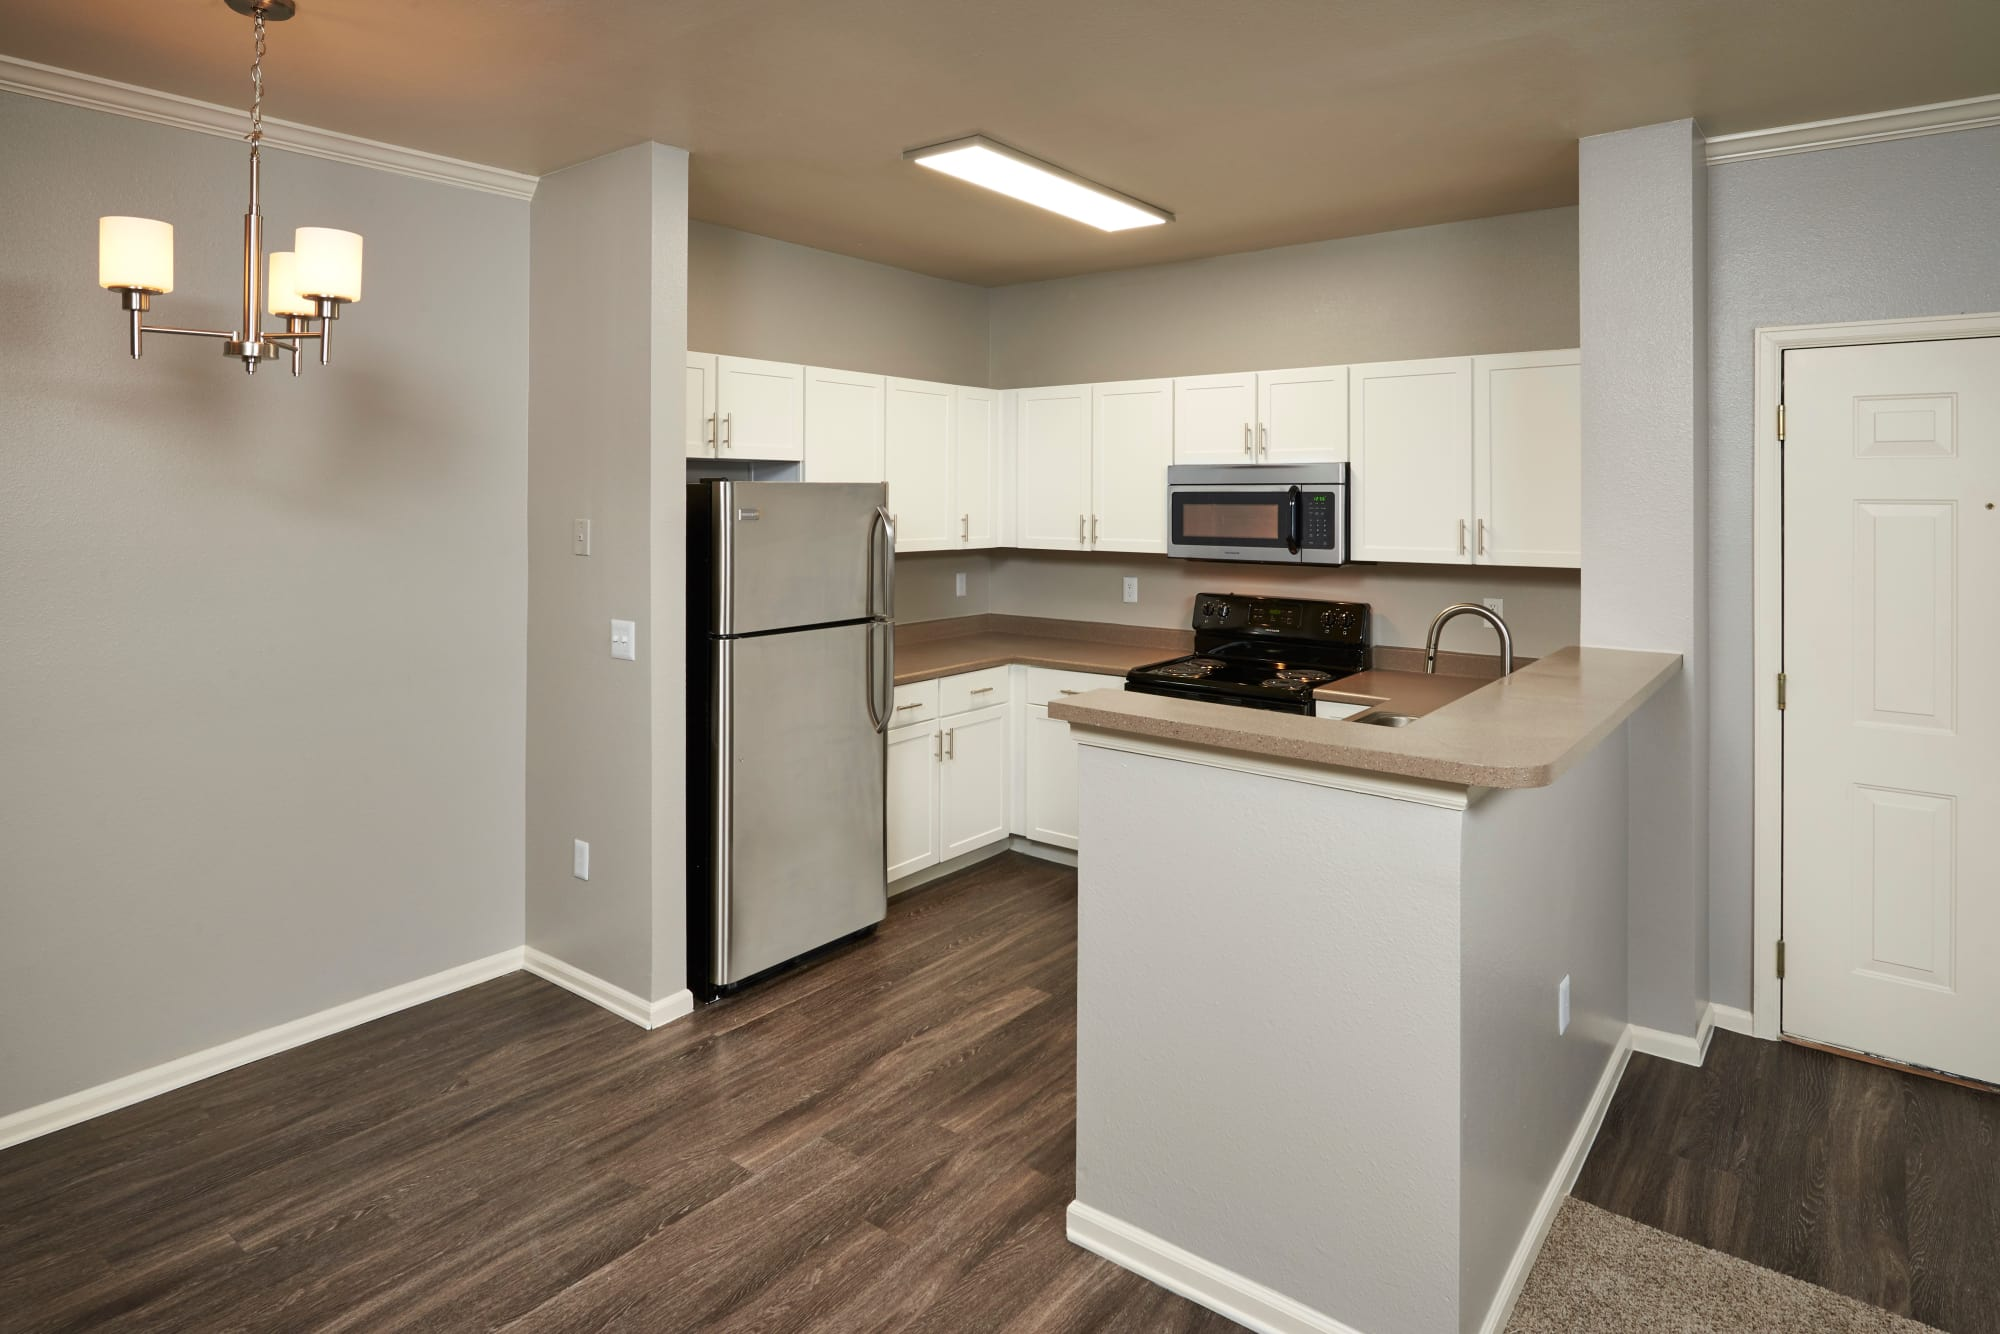 Newly renovated home with white kitchen cabinetry with stainless steel appliances